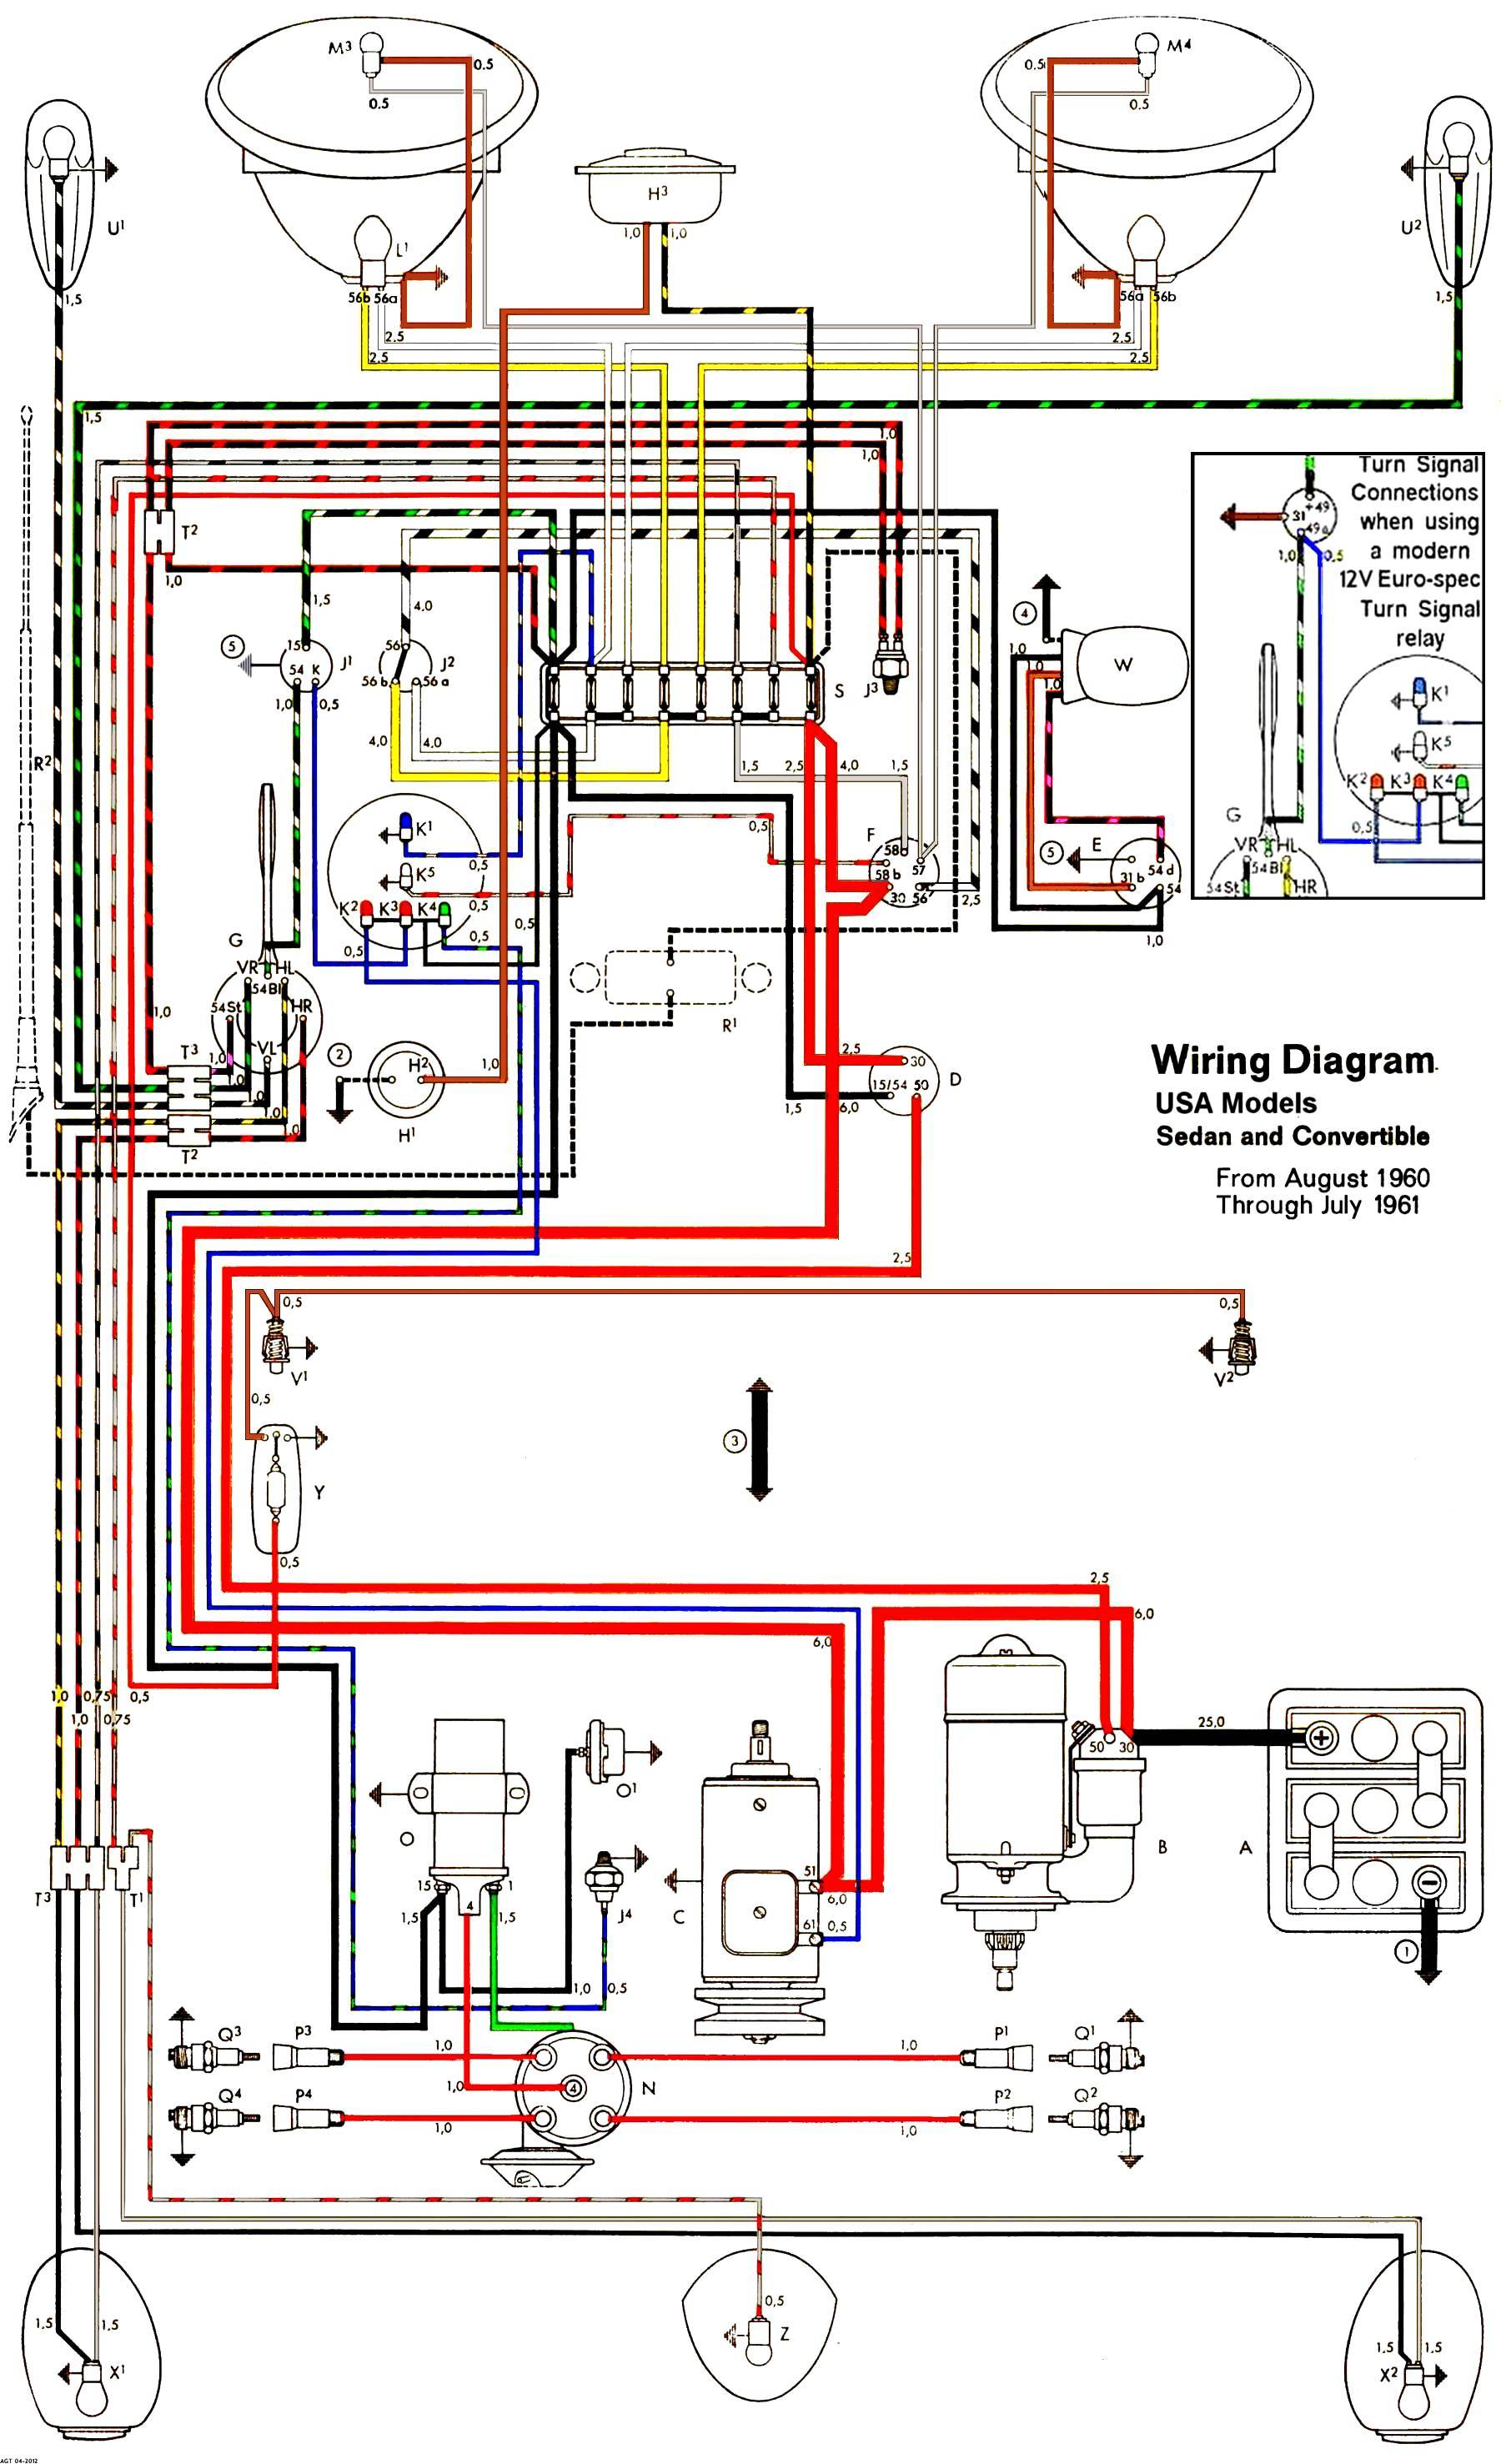 Vw Alternator Wire Diagram 1 Wiring Schematics 12 Volt Dc 74 Beetle Schemes One Ford Thesamba Com Type